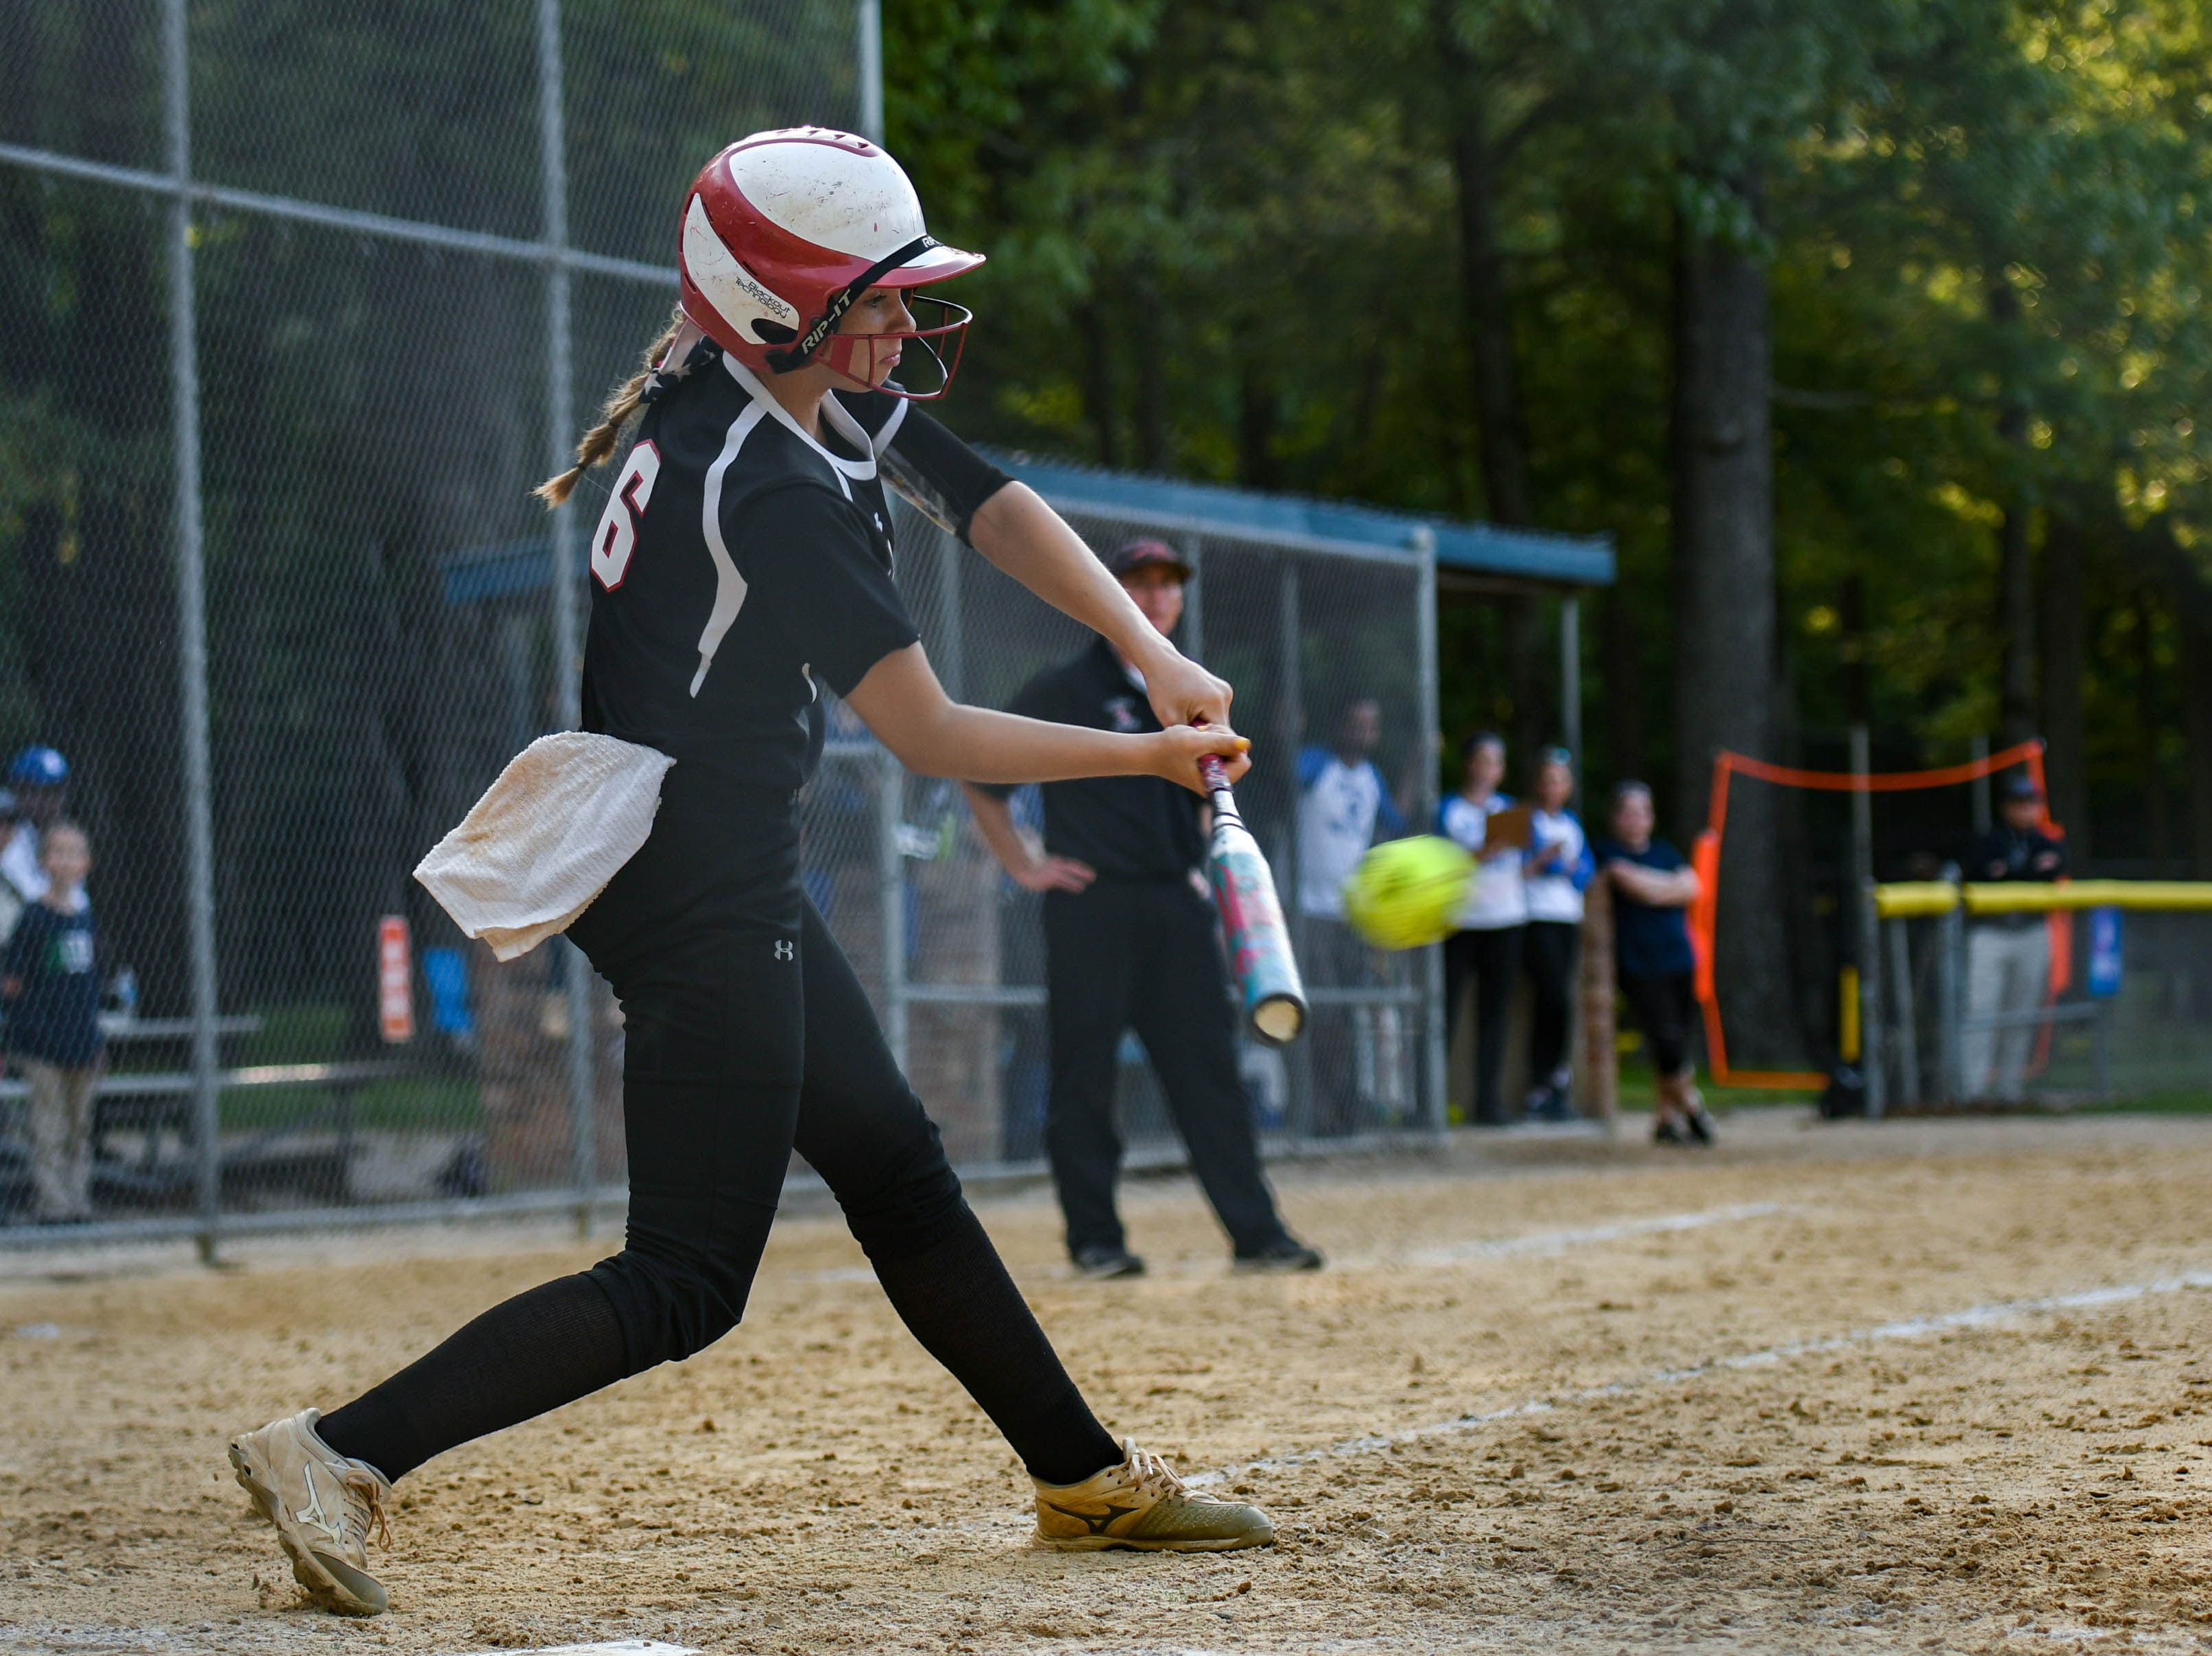 Colonel Richardson's Jen Larrimore (6) bats up against Decatur in the Bayside Softball Championship game on Wednesday, May 8, 2019. Decatur prevailed with a score of 4 to 1.